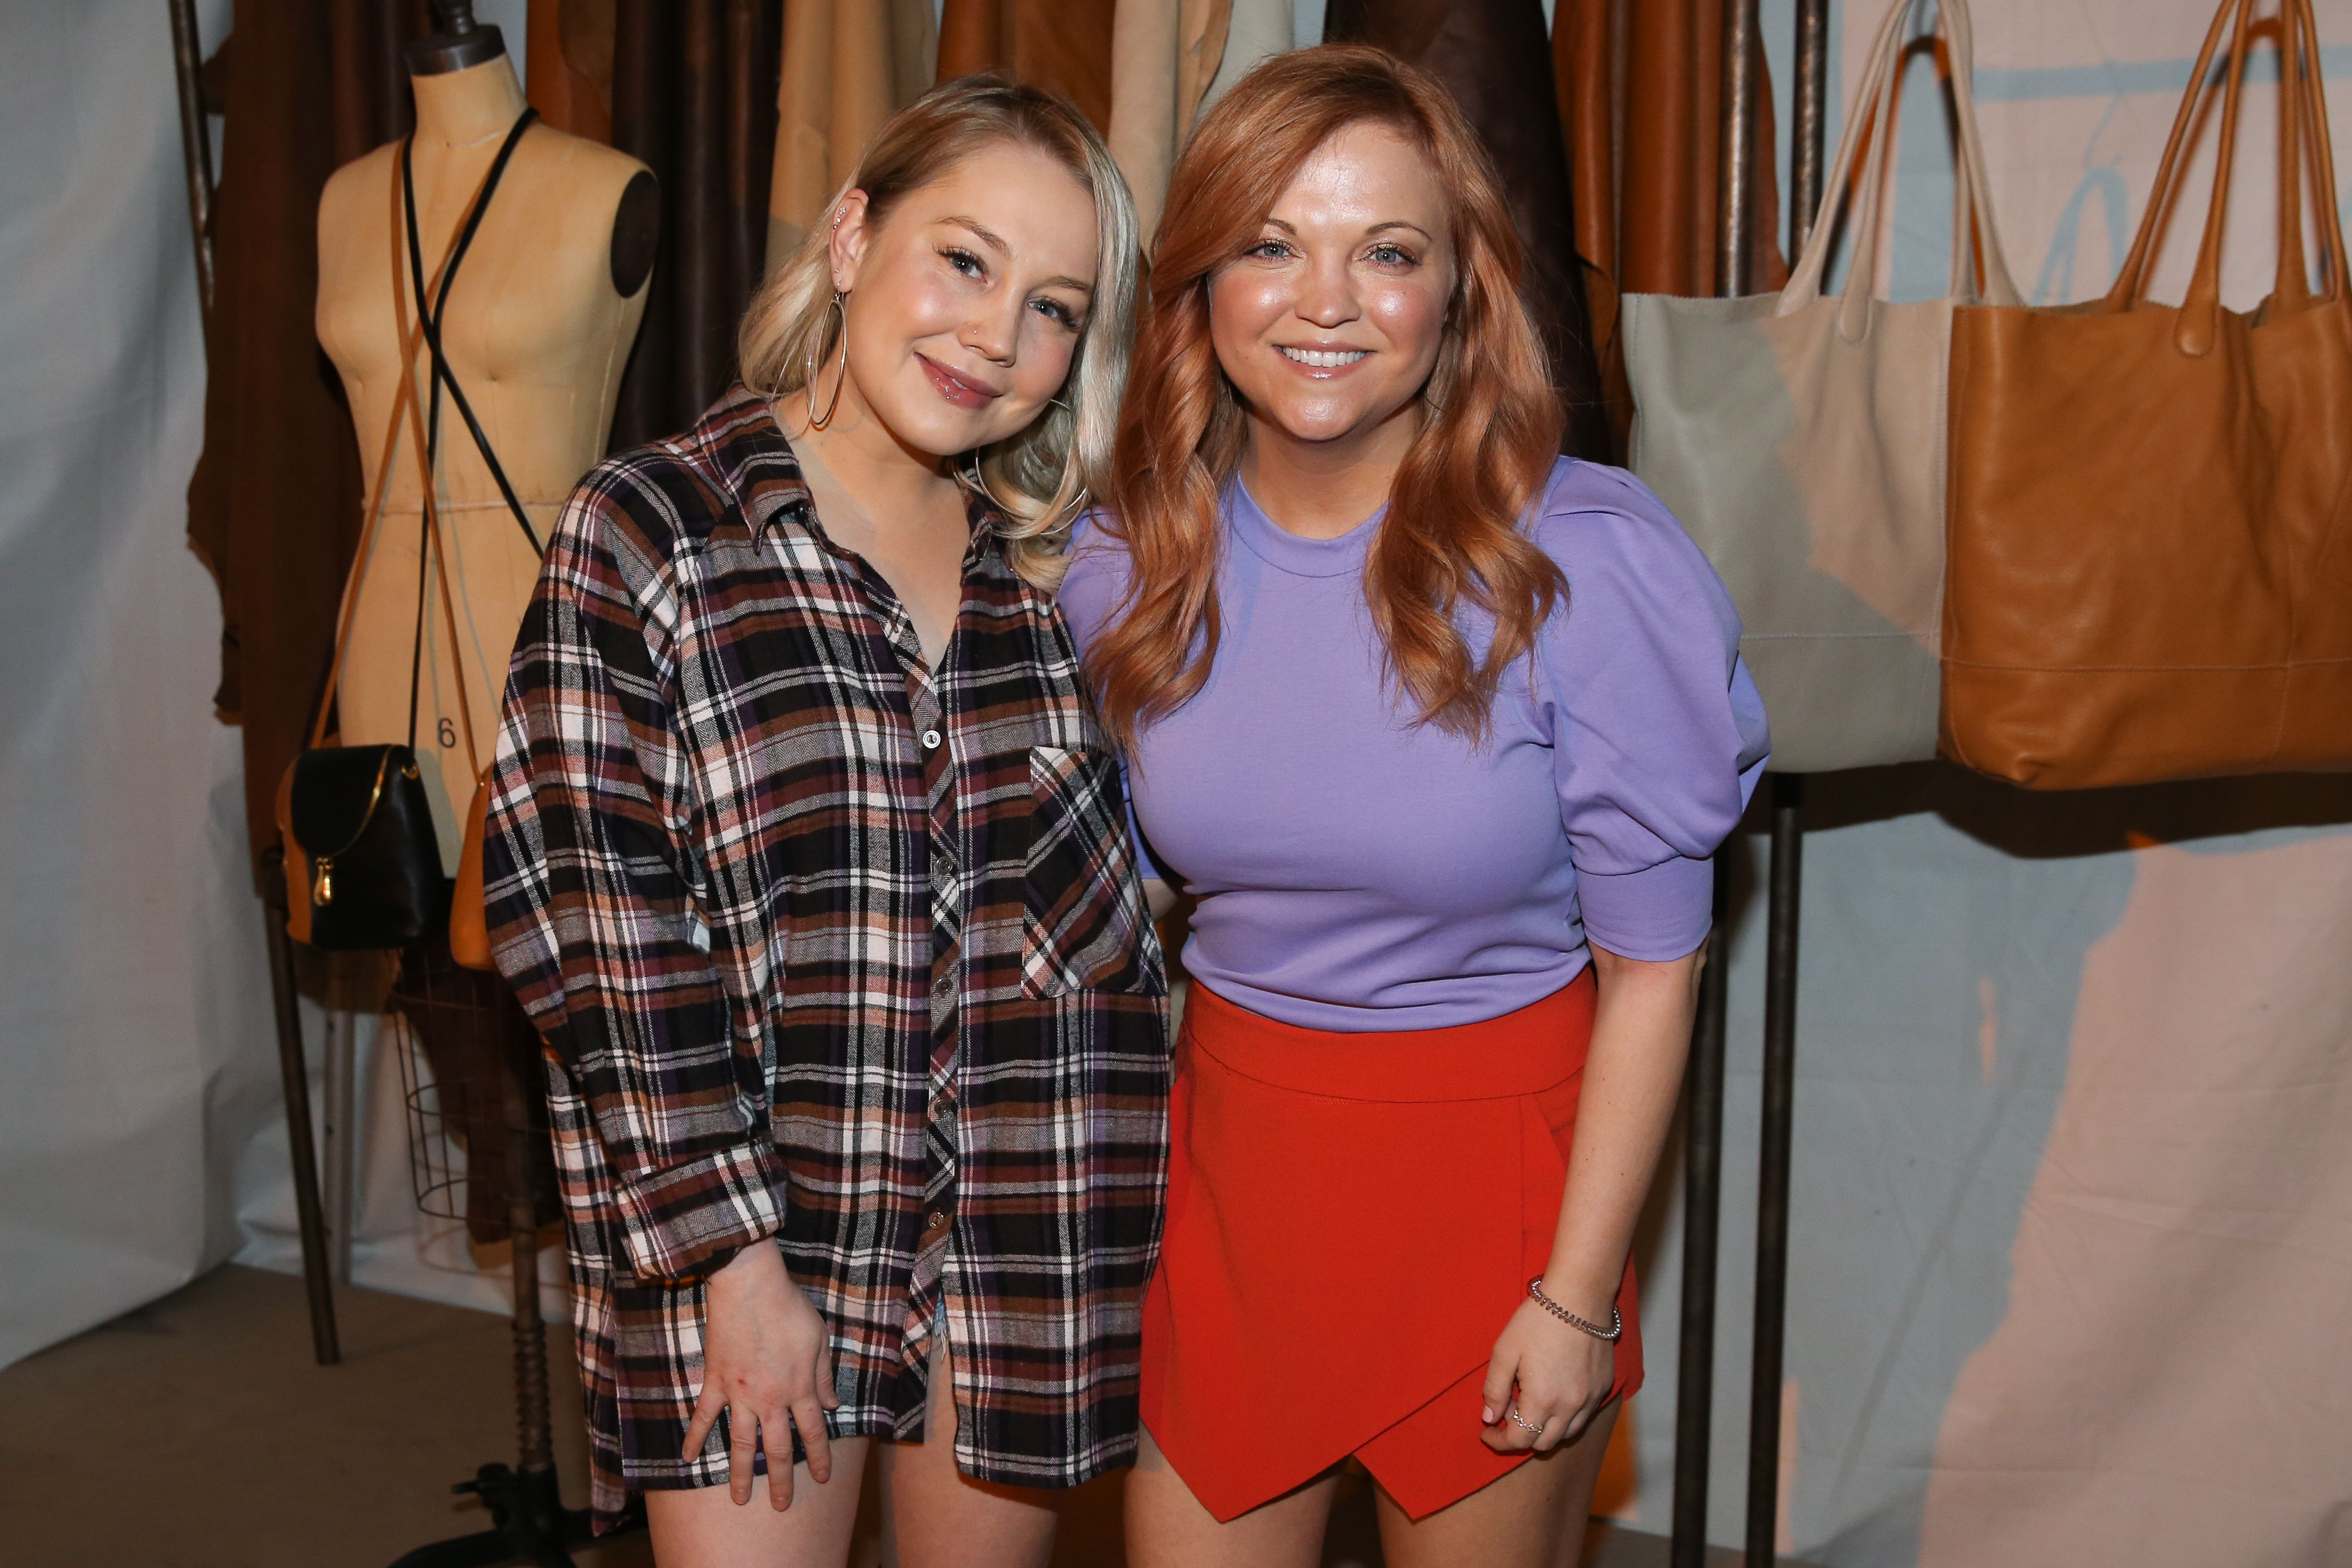 RaeLynn and Krista Roser RaeLynn and Krista Roser celebrate Hobo and Karen Elson's handbag collaboration and the opening of Hobo Leather Lounge on April 4 in Nashville, Tennessee.